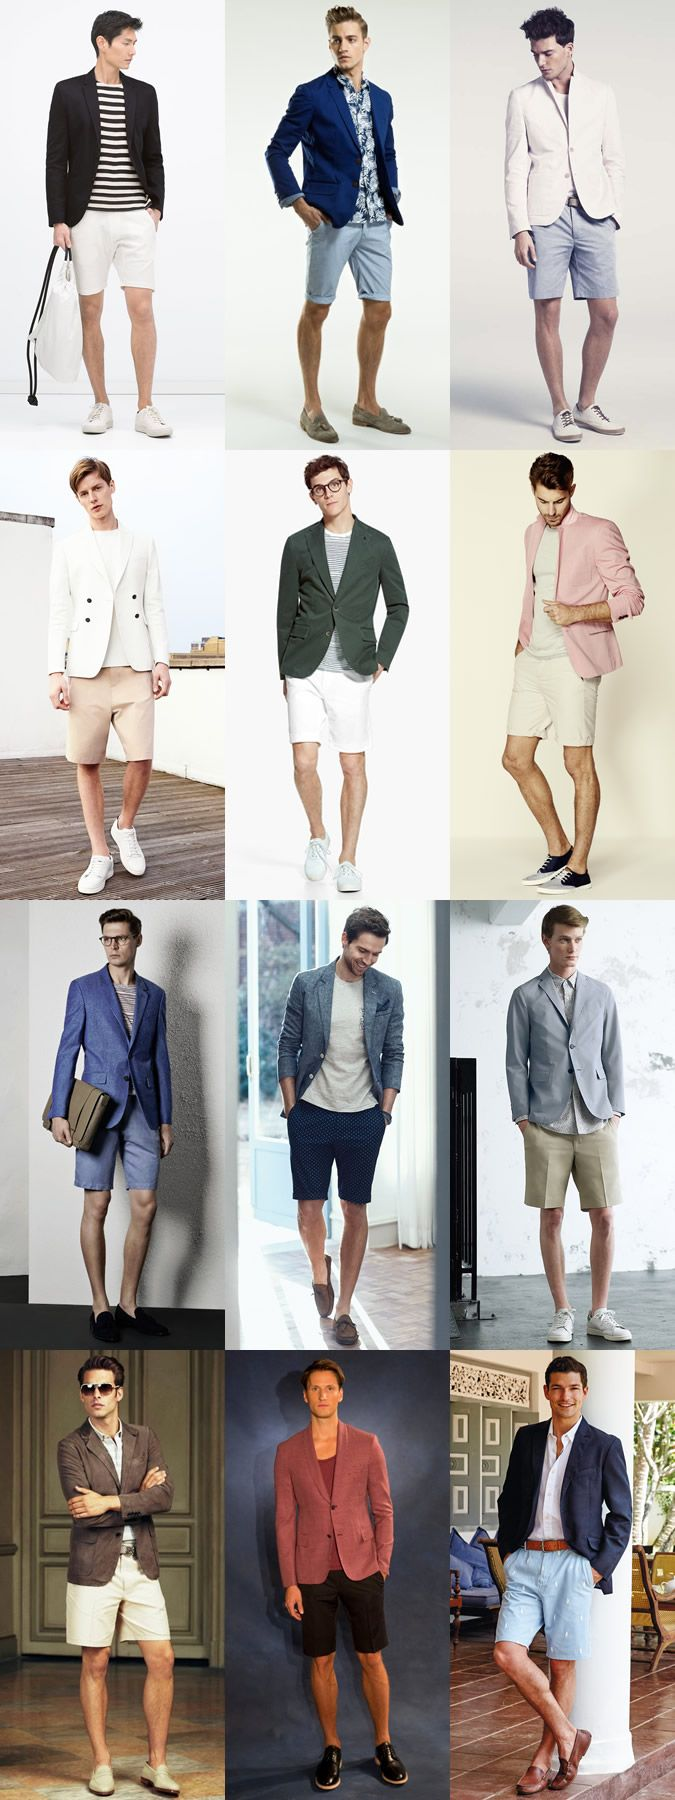 How to Show Smart Casual Looks in Summer?#mens t shirts#Mens fashion shorts